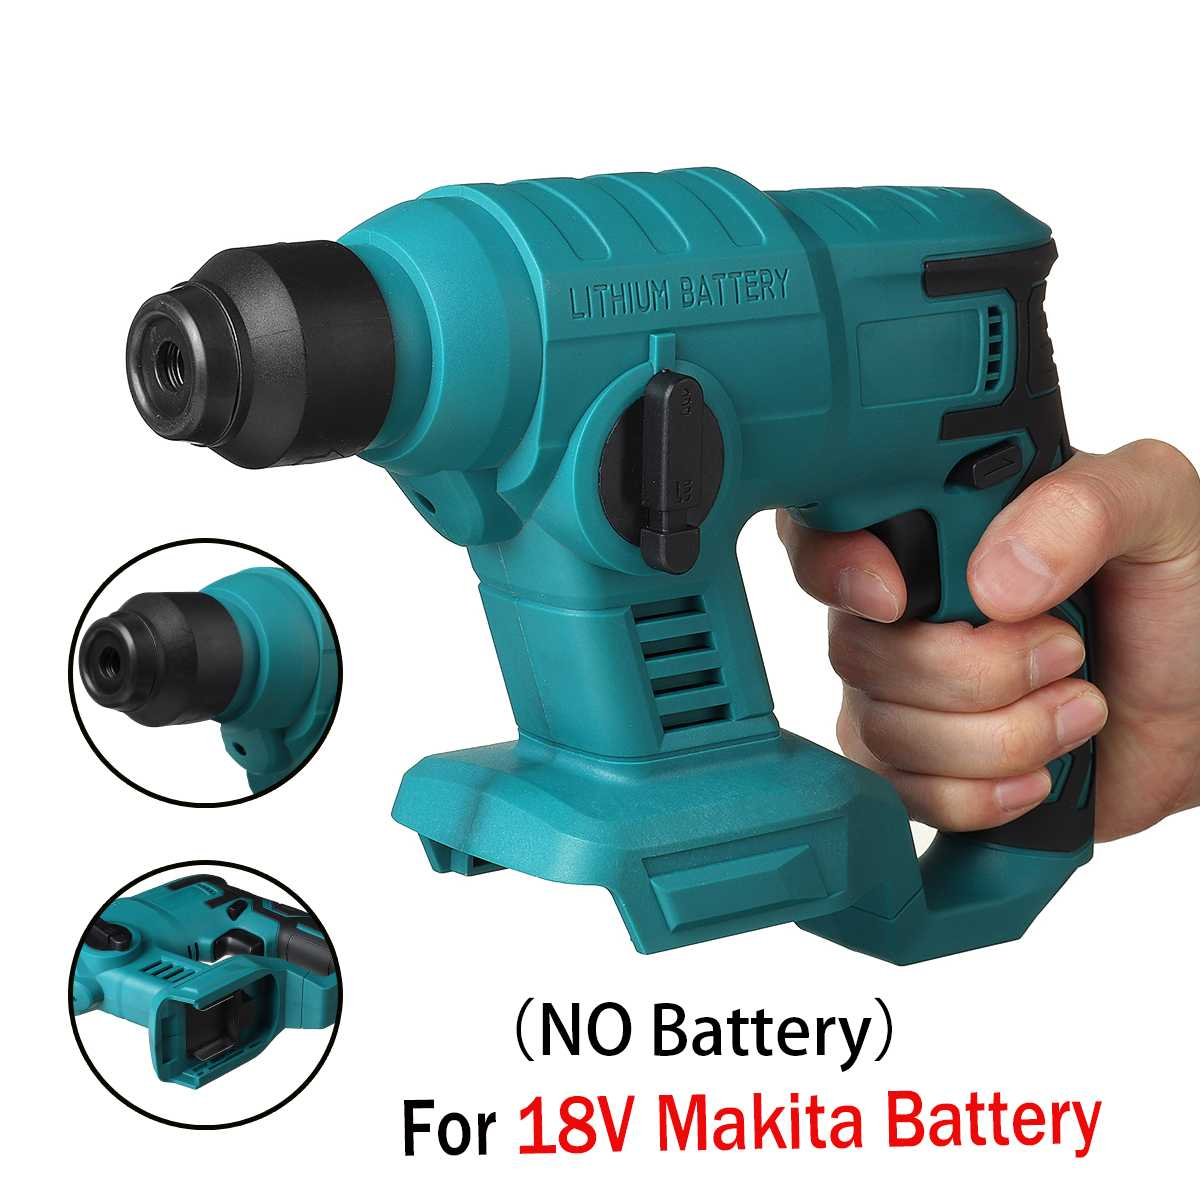 Rechargeable Brushless Cordless Electric Rotary Hammer Drill Multifunction Heavy Duty Impact Hammer Drill For 18V Makita Battery